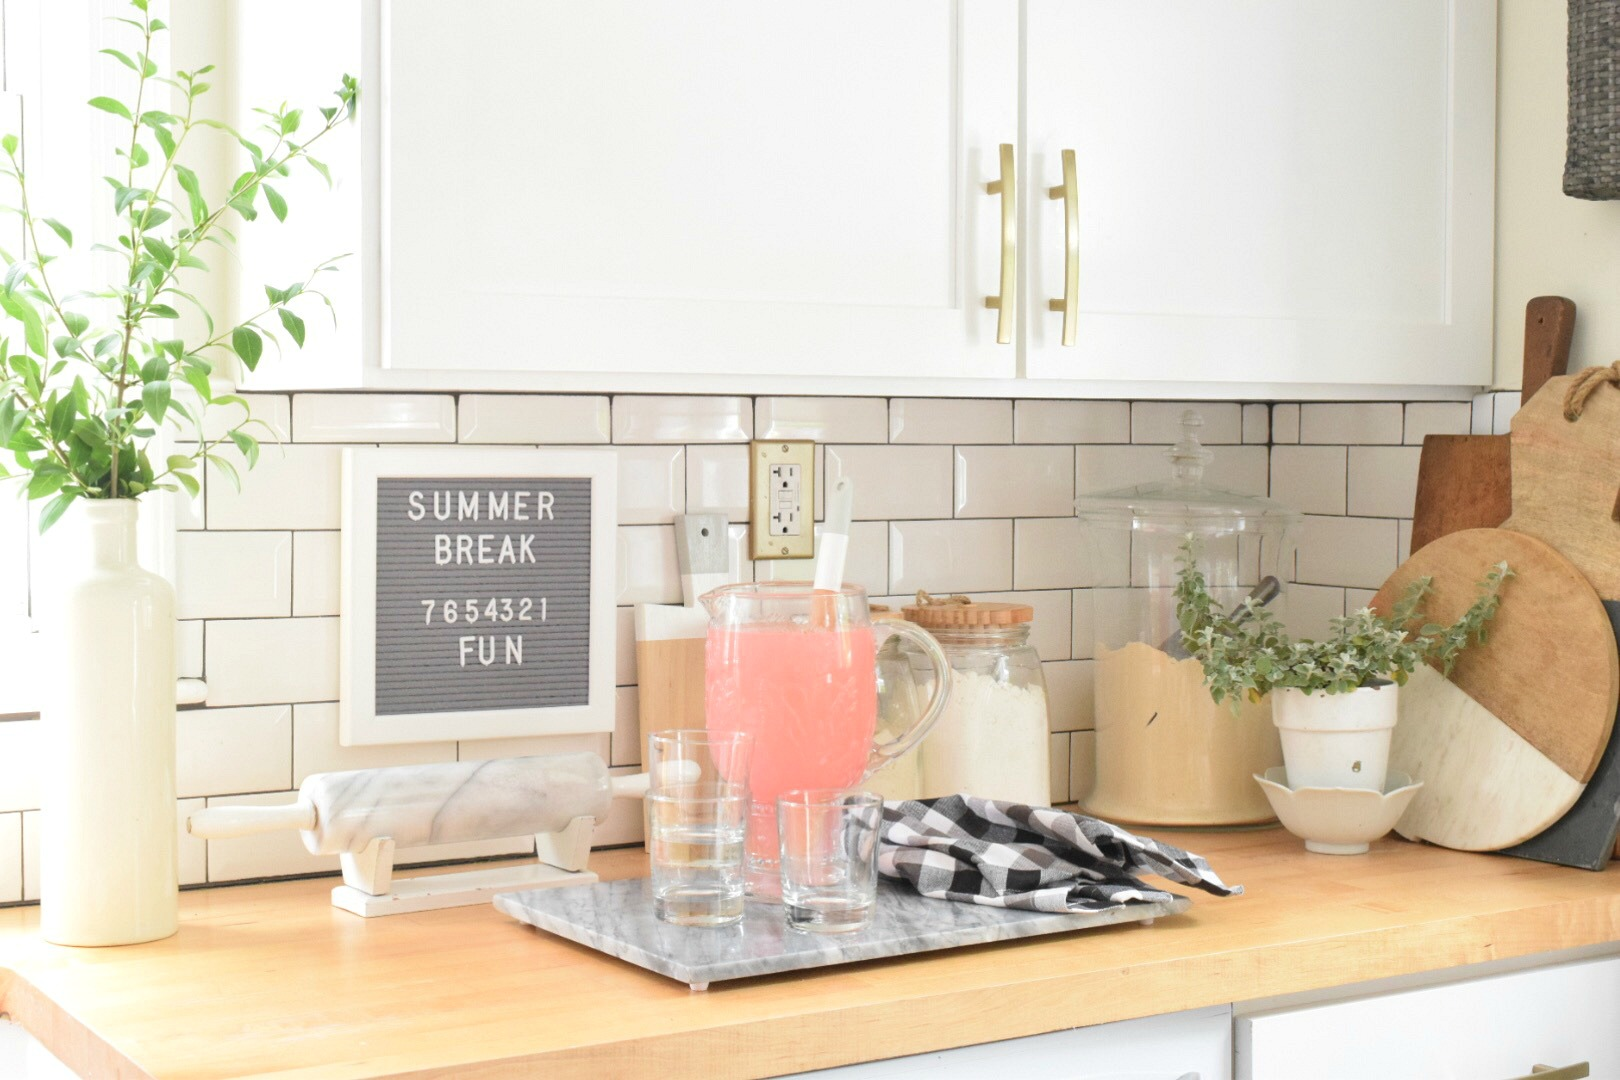 fun home decor ideas. Summer Home Decor in the Kitchen Ideas  Our Tour 2017 Nesting With Grace